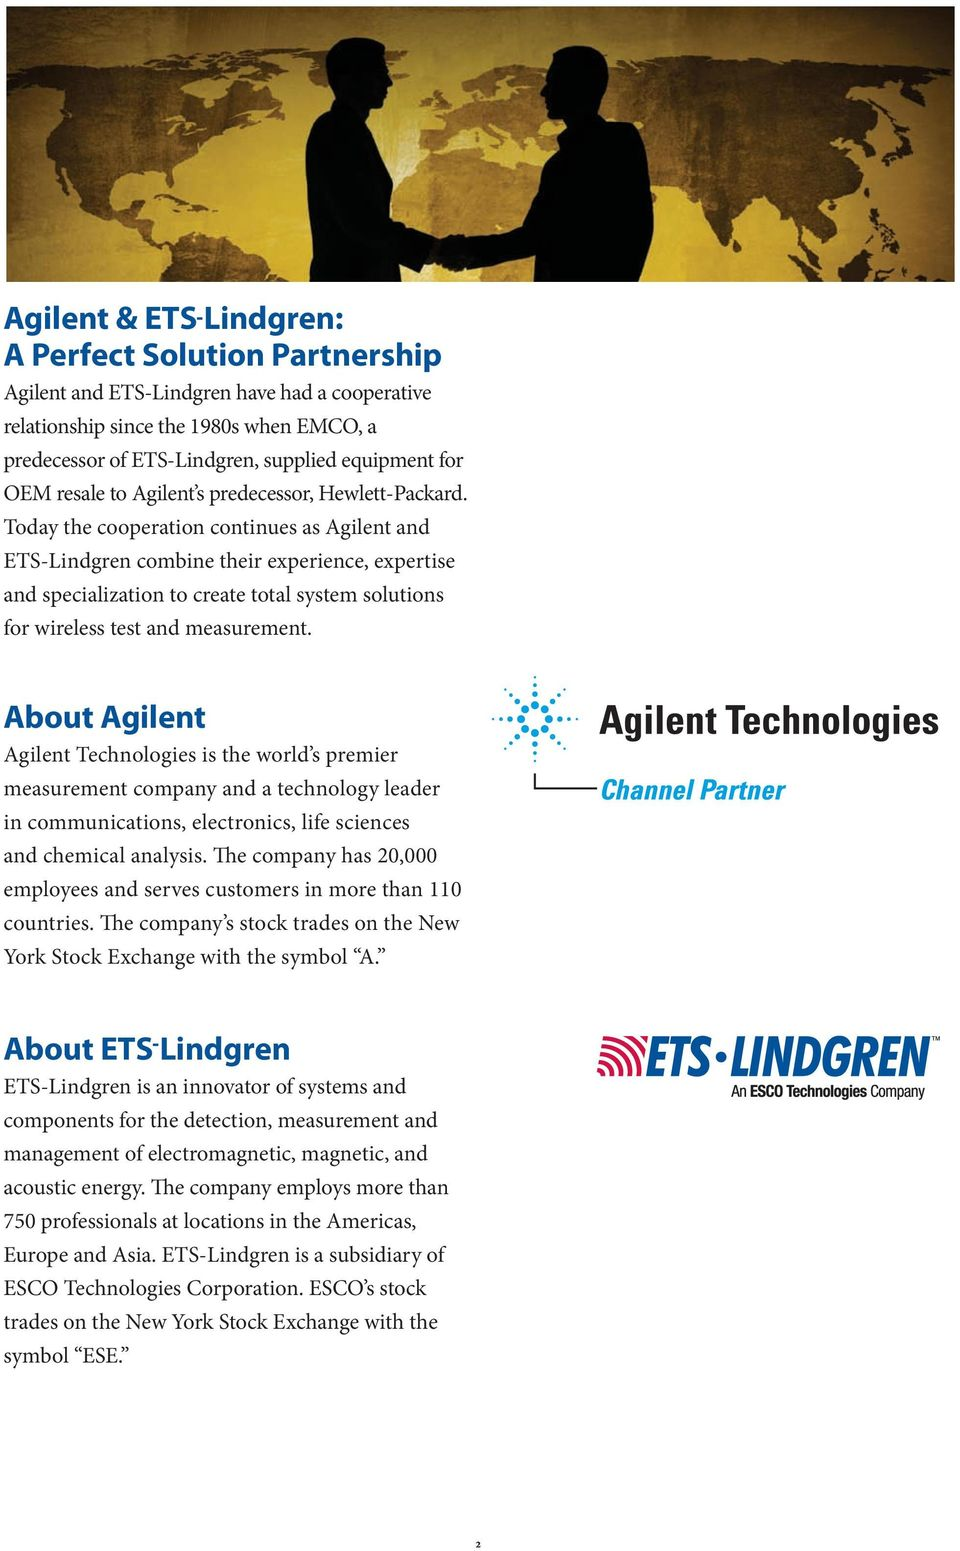 Today the cooperation continues as Agilent and ETS-Lindgren combine their experience, expertise and specialization to create total system solutions for wireless test and measurement.